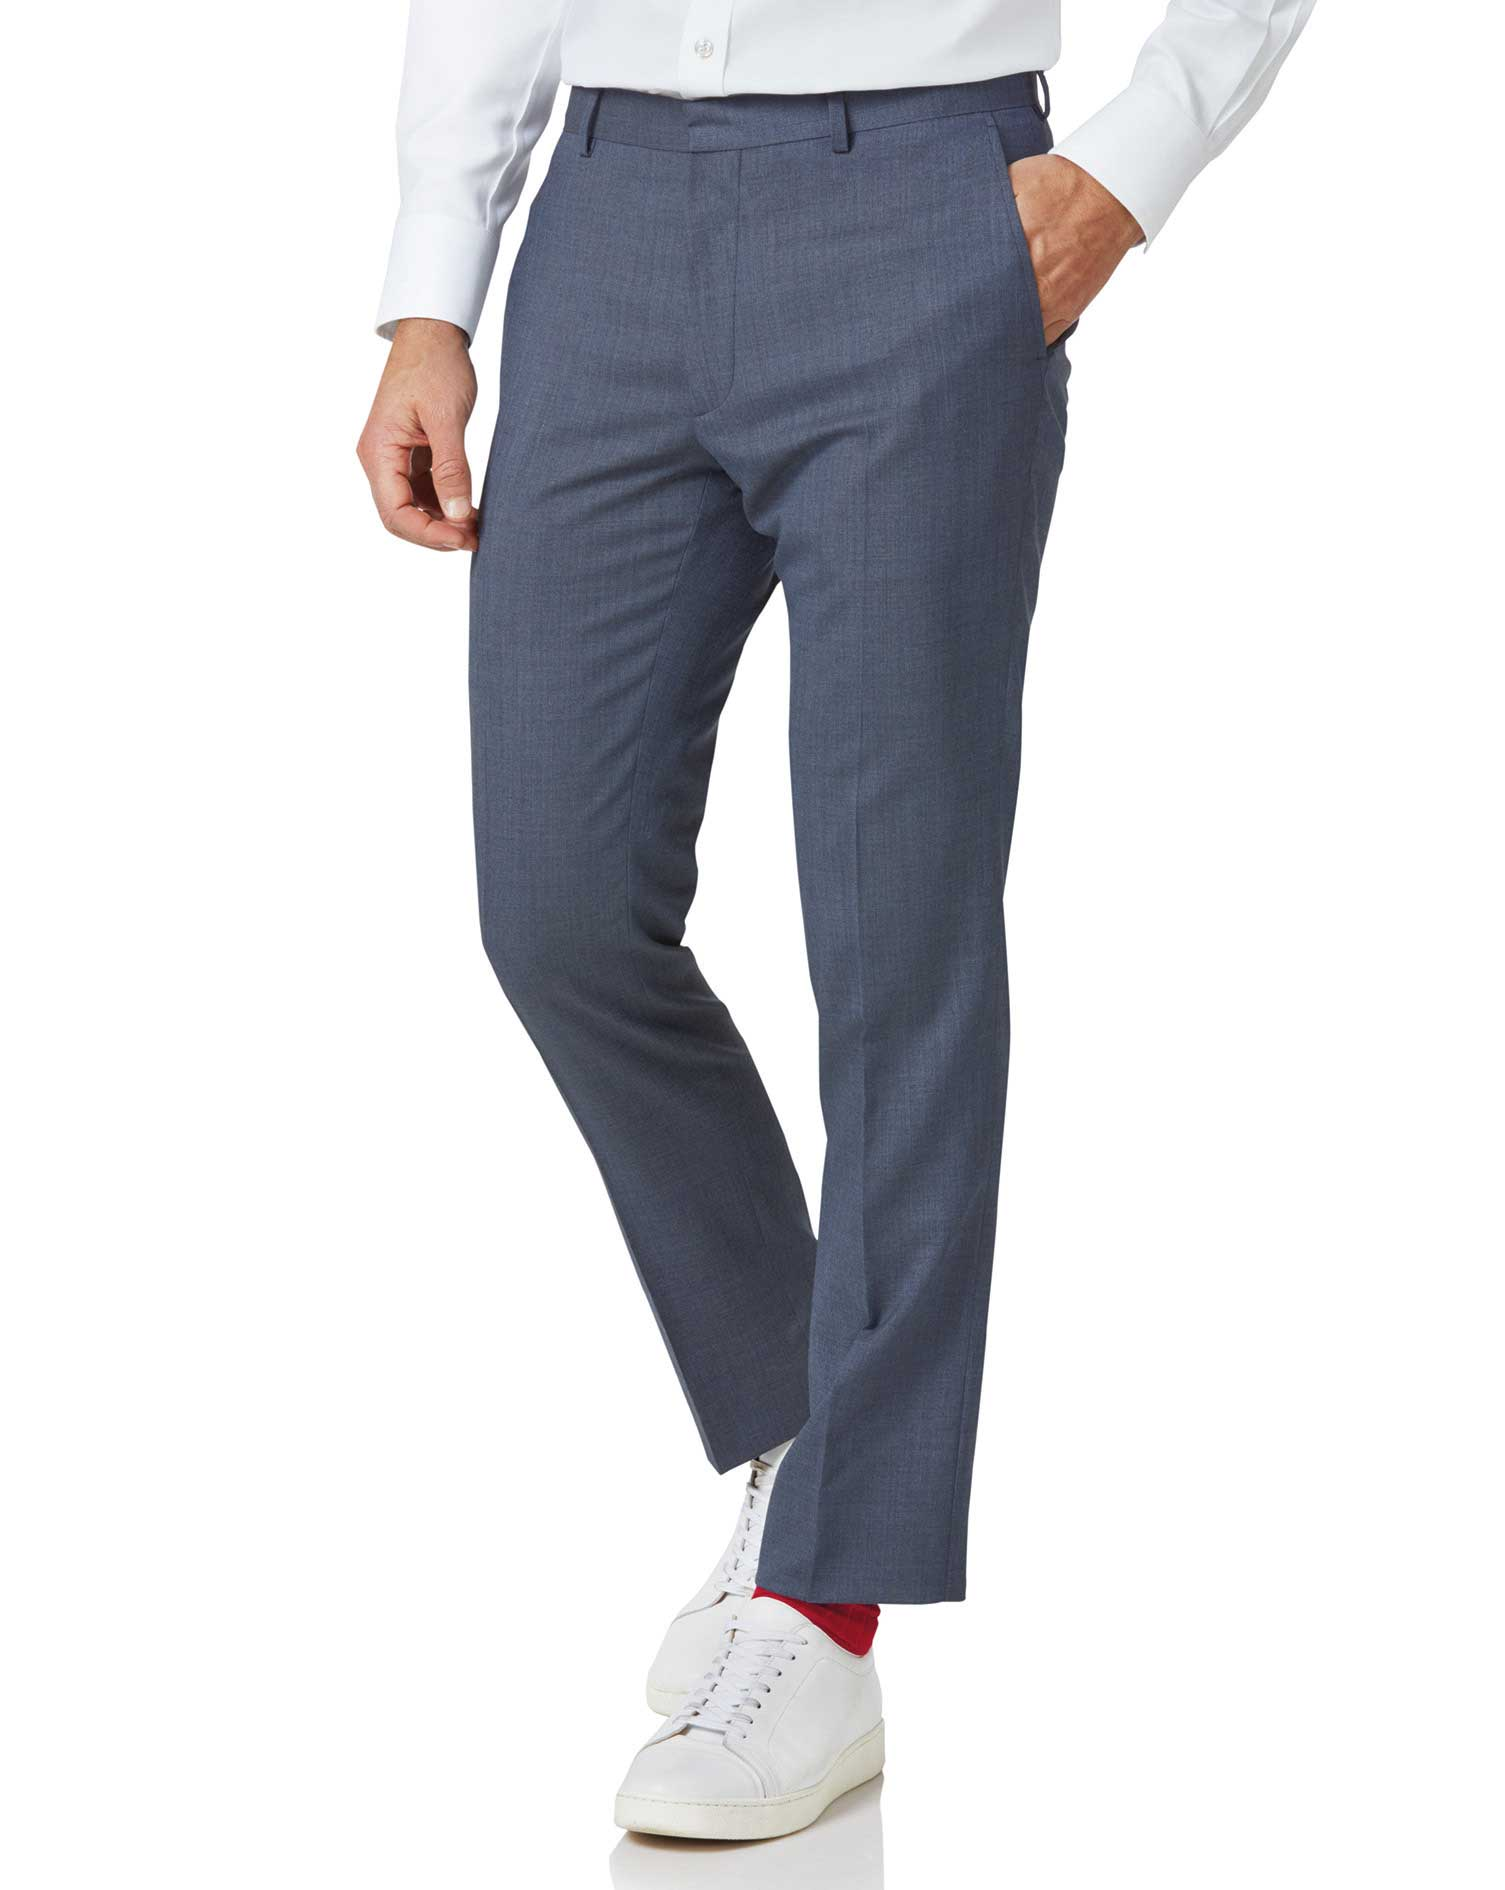 Image of Charles Tyrwhitt Airforce Blue Slim Fit Merino Business Suit Trousers Size W102 L97 by Charles Tyrwhitt